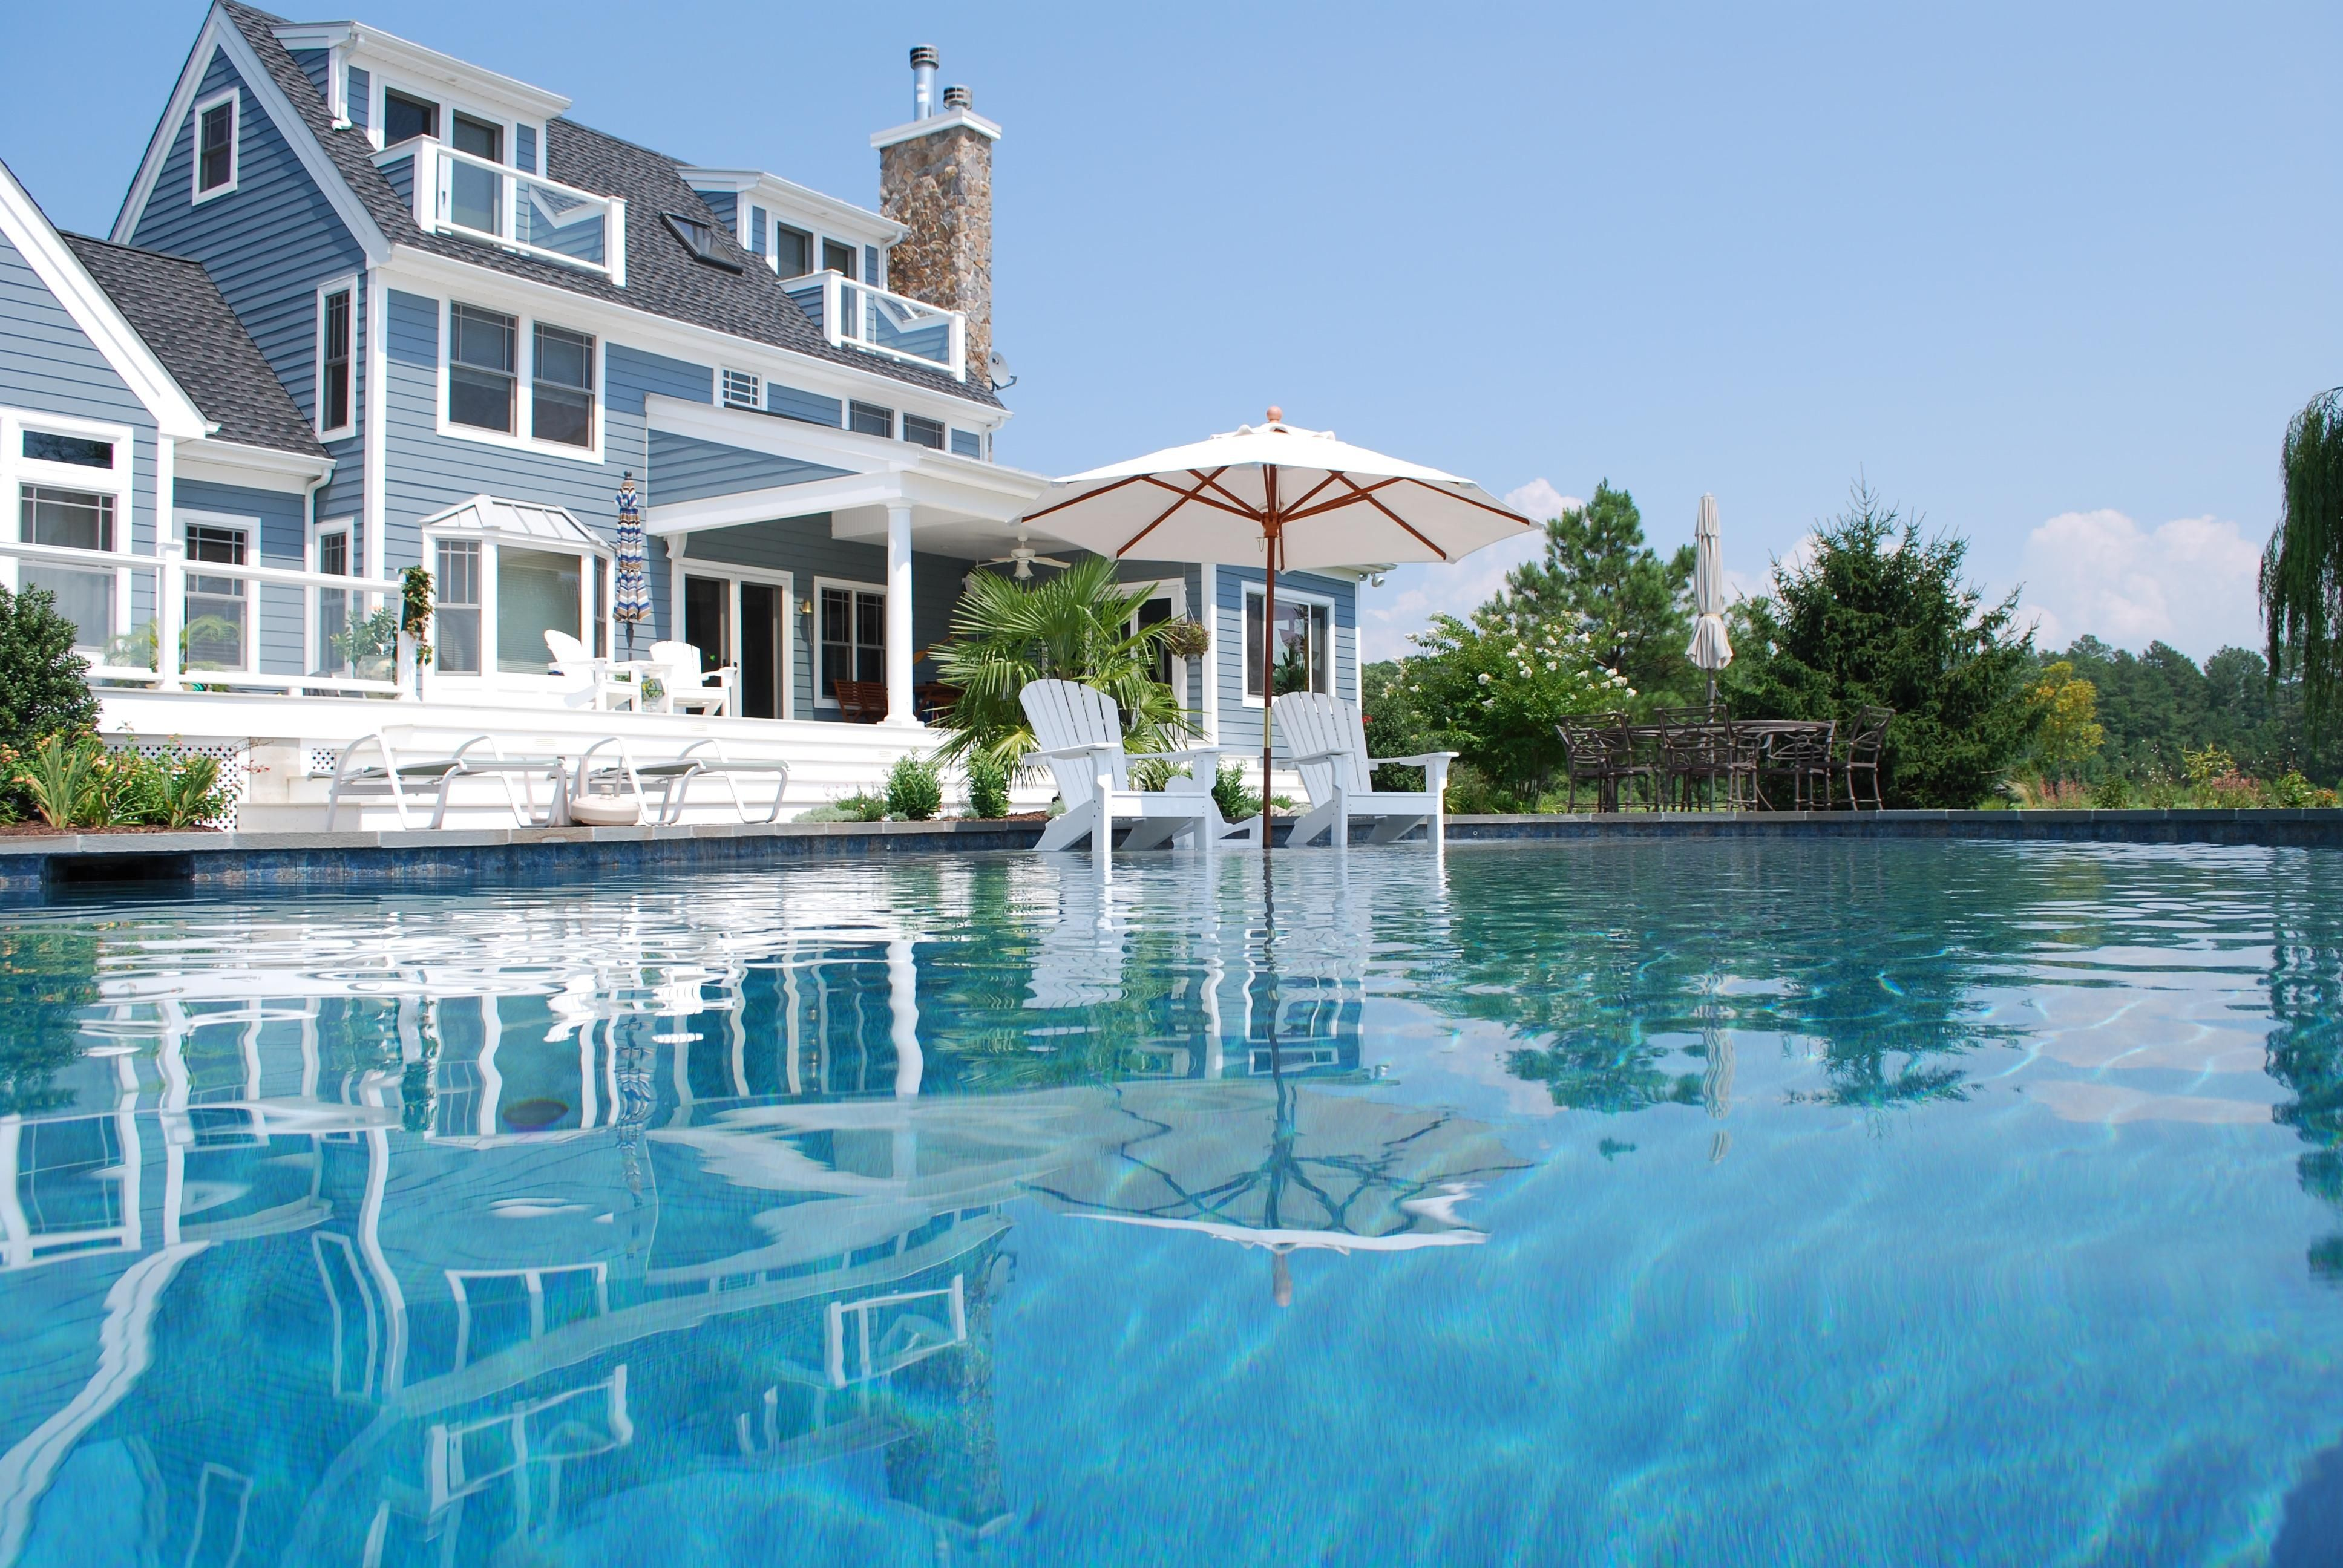 Custom Pool From Aqua Pools Spas In Easton Maryland Characters Letting Go The Ss Women S Fiction Contemporary Romance Could Find